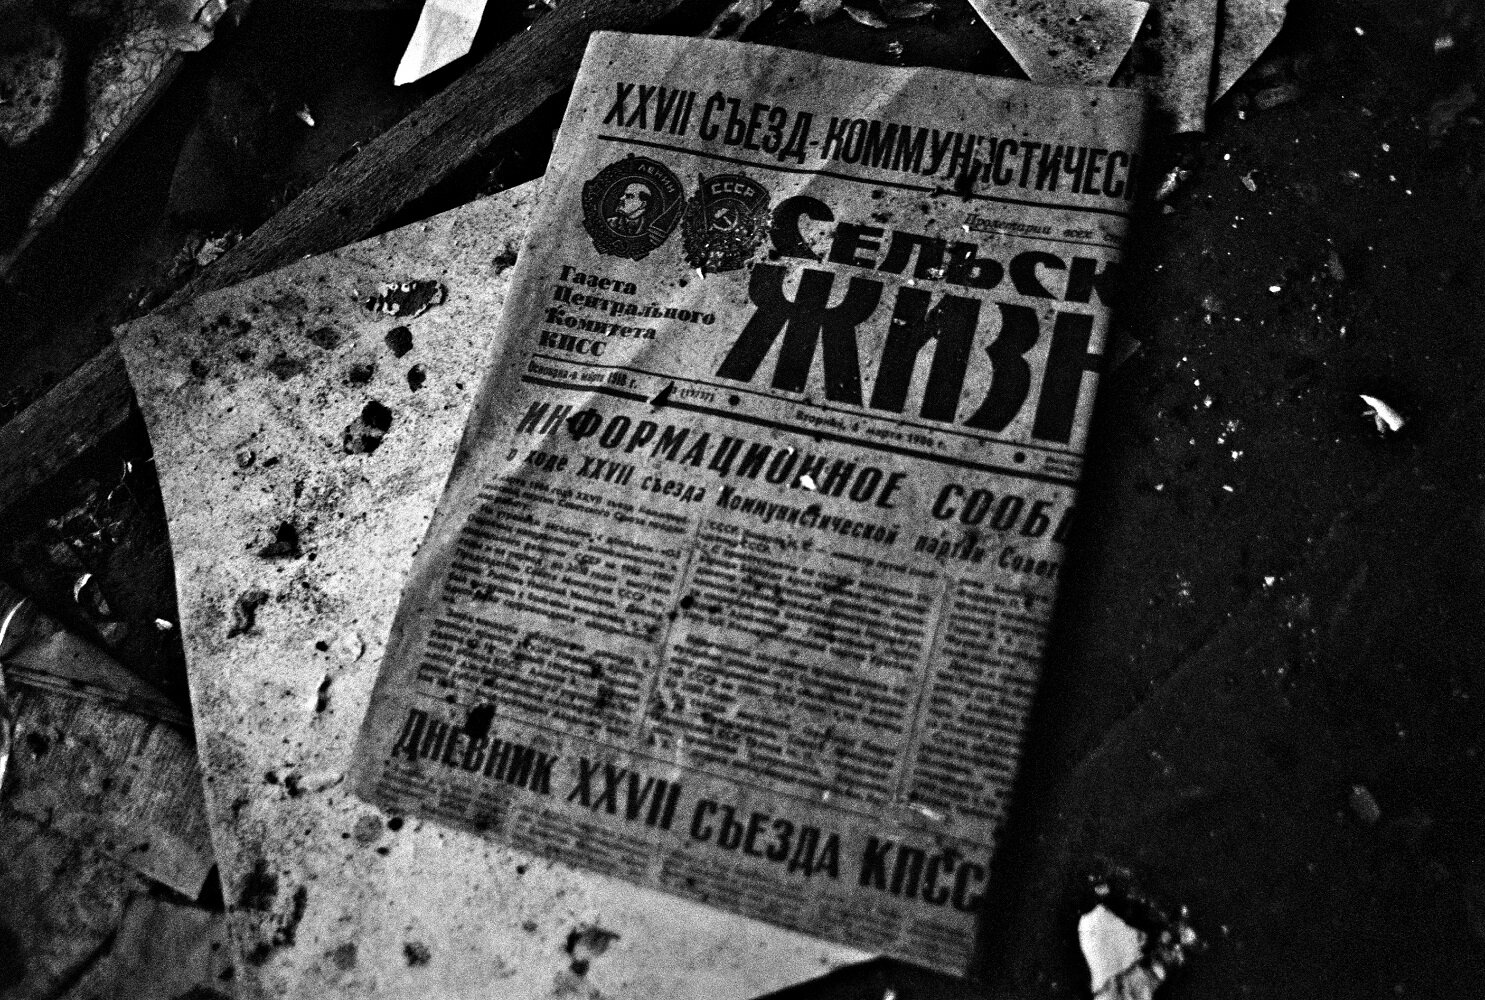 Alice Miceli,  Chernobyl Exclusion Zone ,  March 1986 Newspaper,  Belarus, archival inkjet print, 2009. Courtesy of the artist and Galeria Nara Roesler.